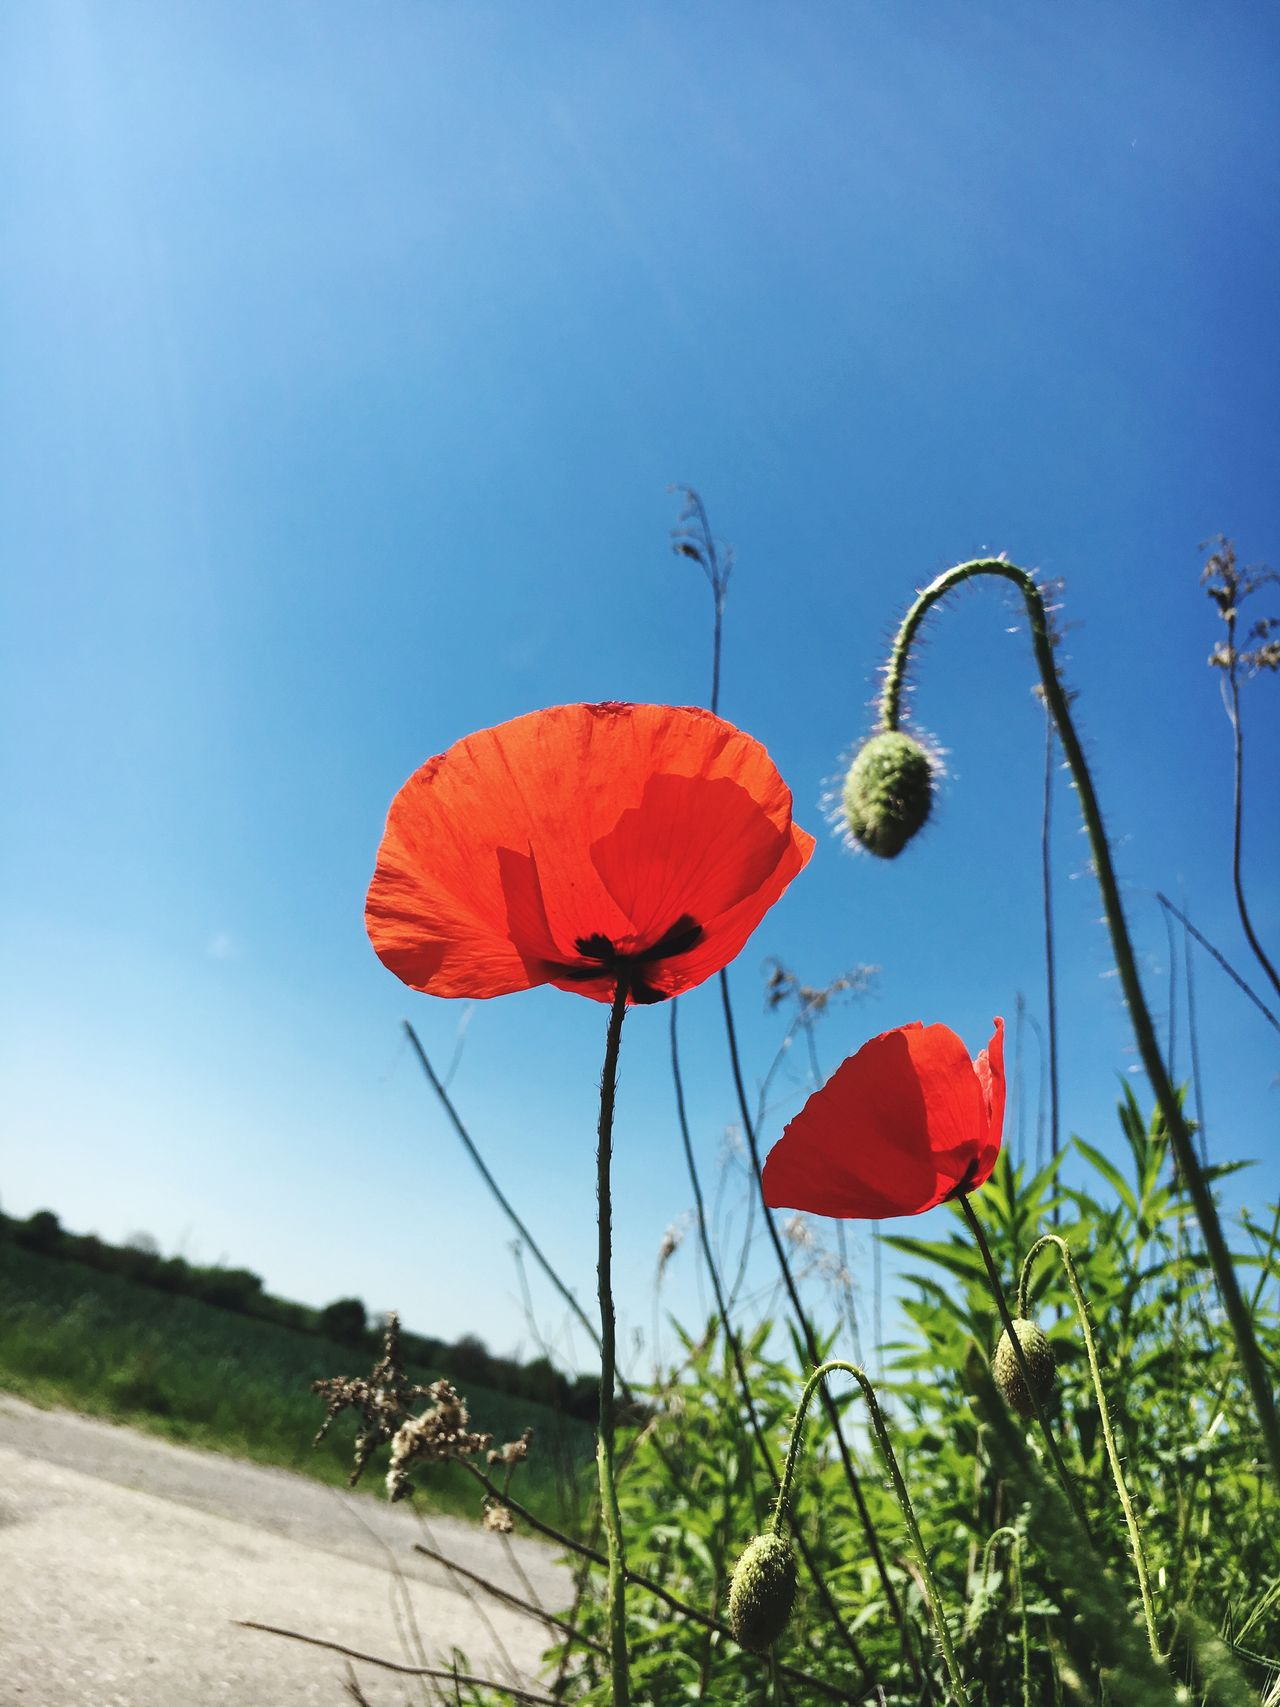 Plant Growth Day Outdoors Red No People Low Angle View Blue Clear Sky Sky Nature Flower Beauty In Nature Freshness Mohn Mohnblume Poppy Poppy Flowers Poppies  Poppy Flower Nature Beauty In Nature